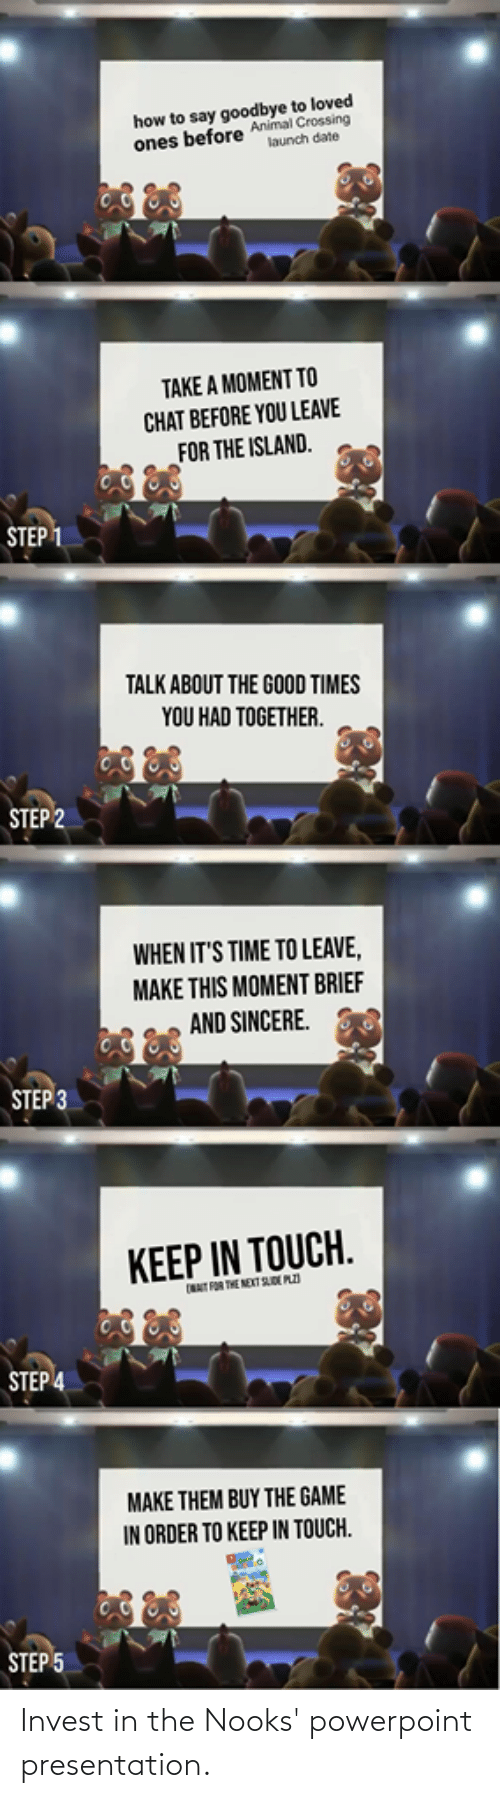 Step 3: how to say goodbye to loved  ones before Animal Crossing  launch date  TAKE A MOMENT TO  CHAT BEFORE YOU LEAVE  FOR THE ISLAND.  ŠTEP 1  TALK ABOUT THE GOOD TIMES  YOU HAD TOGETHER.  STEP 2  WHEN IT'S TIME TO LEAVE,  MAKE THIS MOMENT BRIEF  AND SINCERE.  STEP 3  KEEP IN TOUCH.  NAT FOR THE NEXT SD PZI  STEP 4  MAKE THEM BUY THE GAME  IN ORDER TO KEEP IN TOUCH.  STEP 5 Invest in the Nooks' powerpoint presentation.